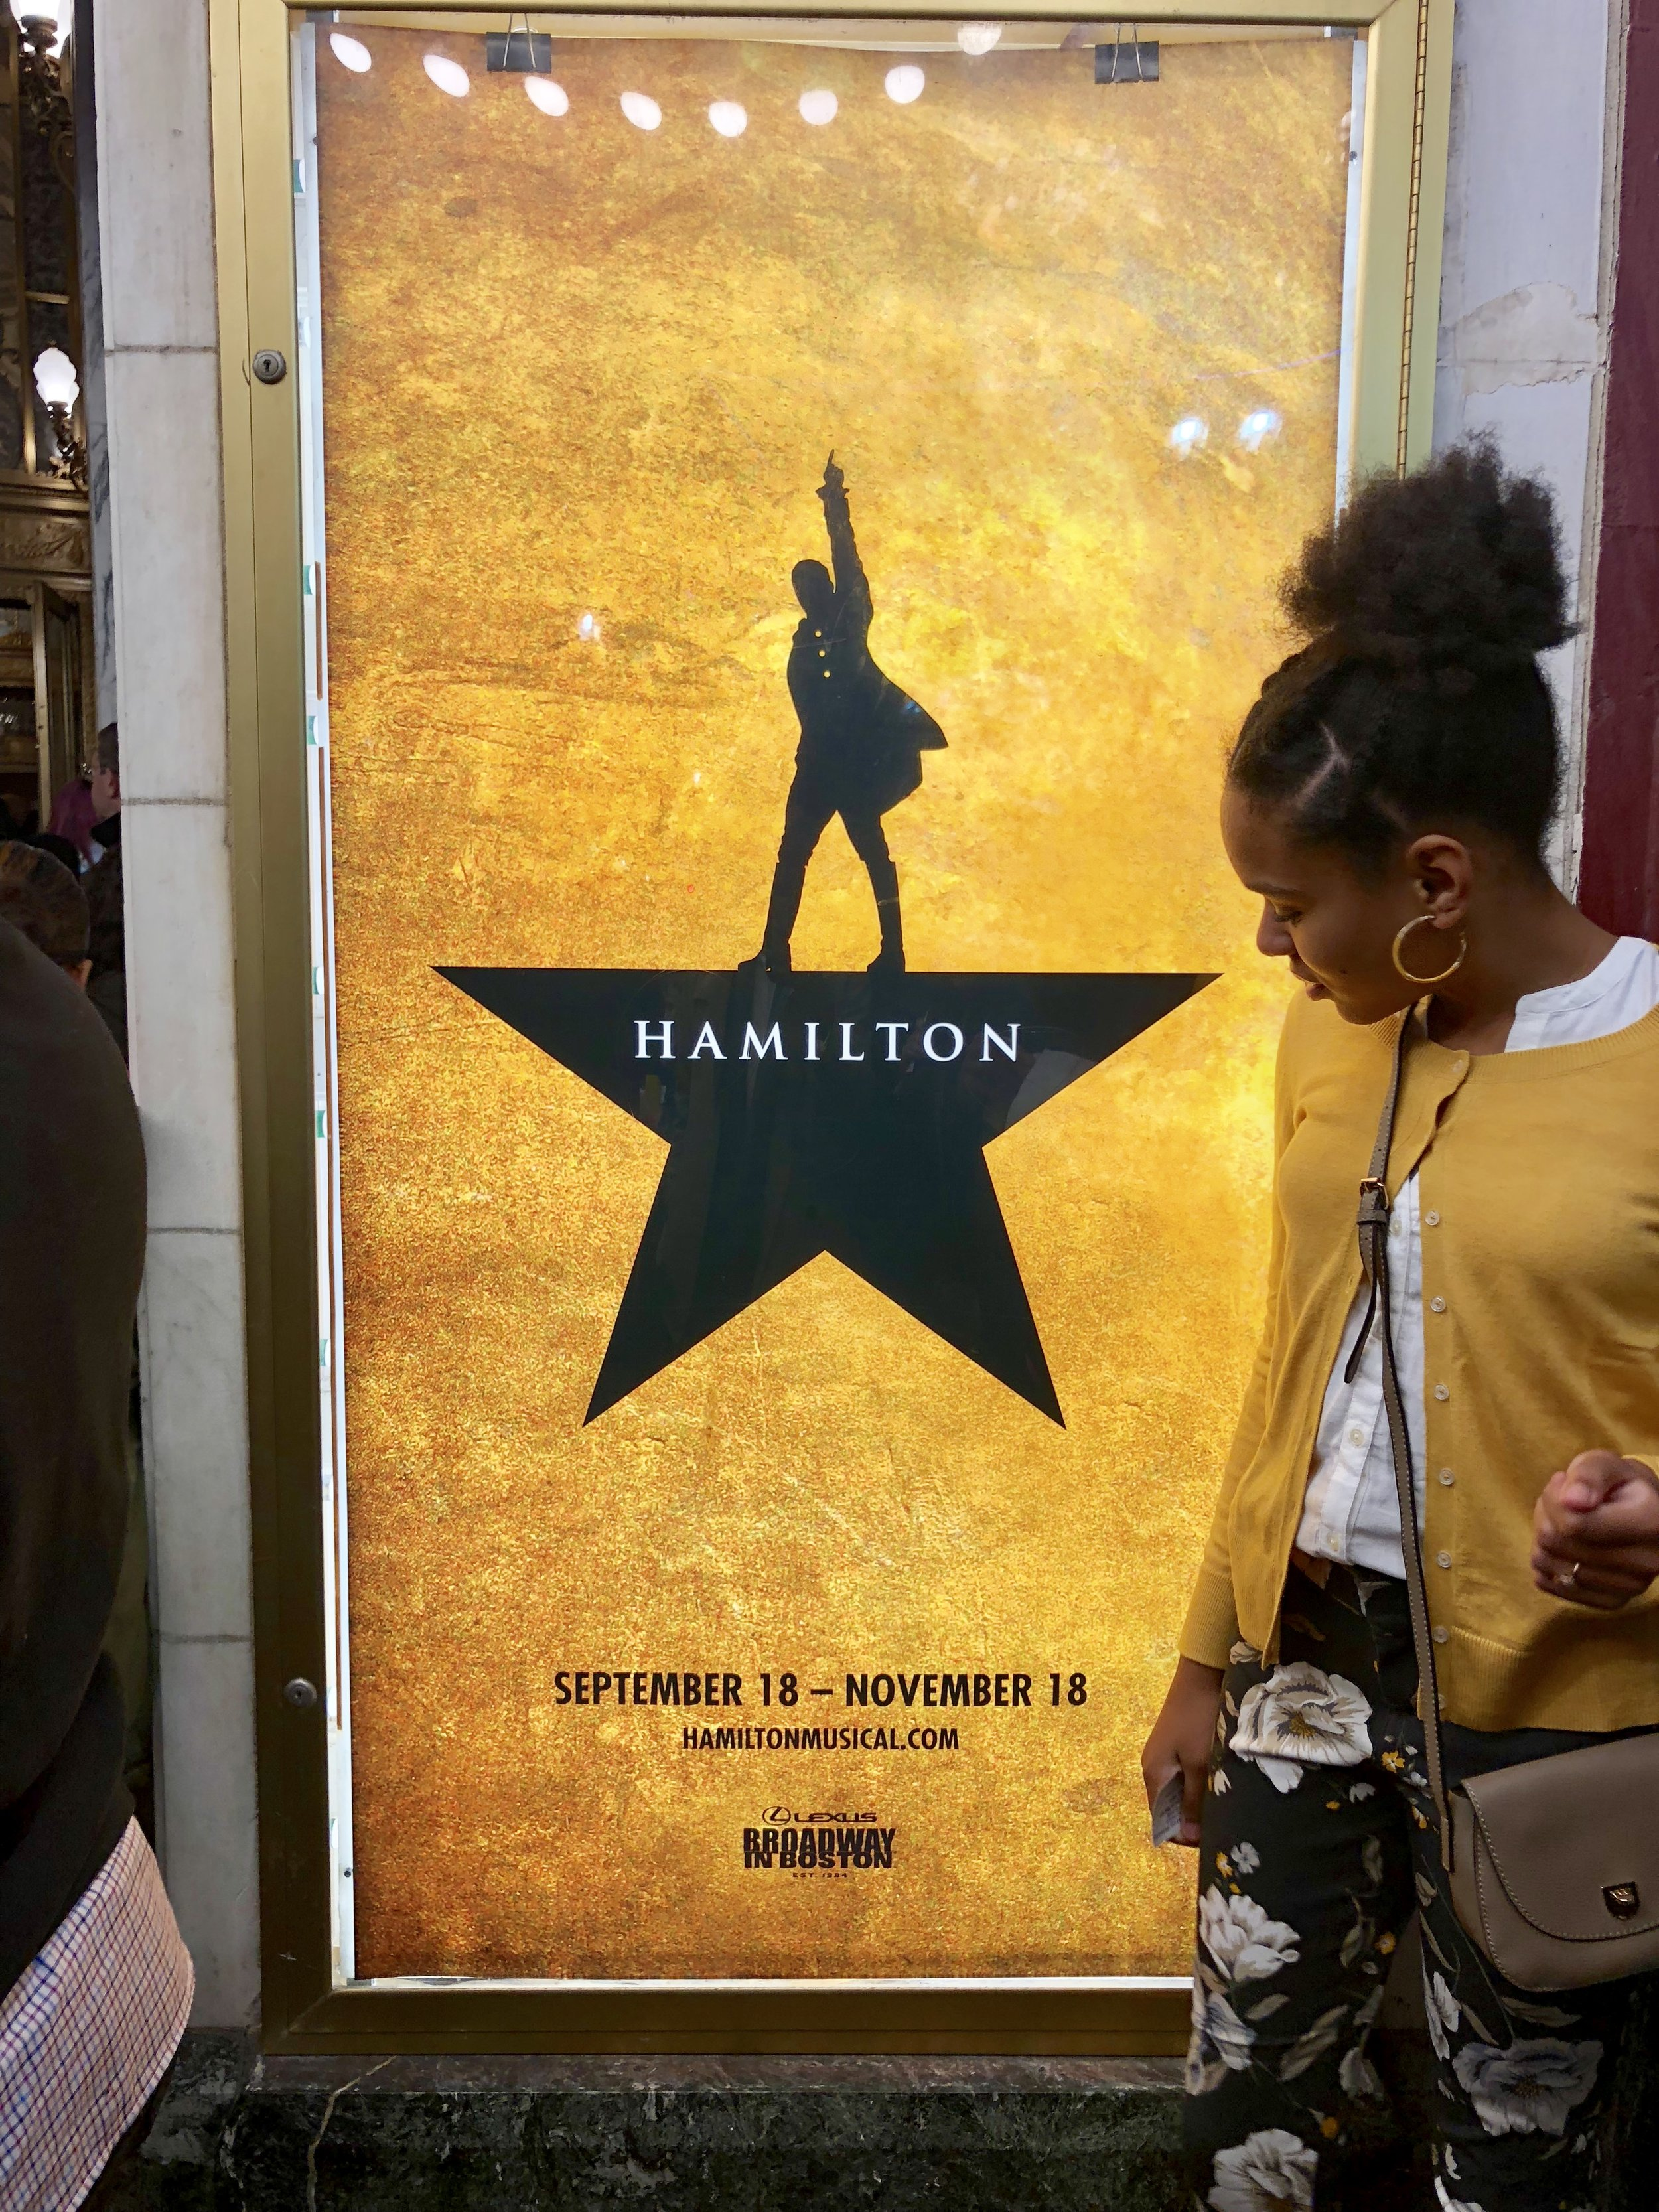 Jourdan excited to see Hamilton